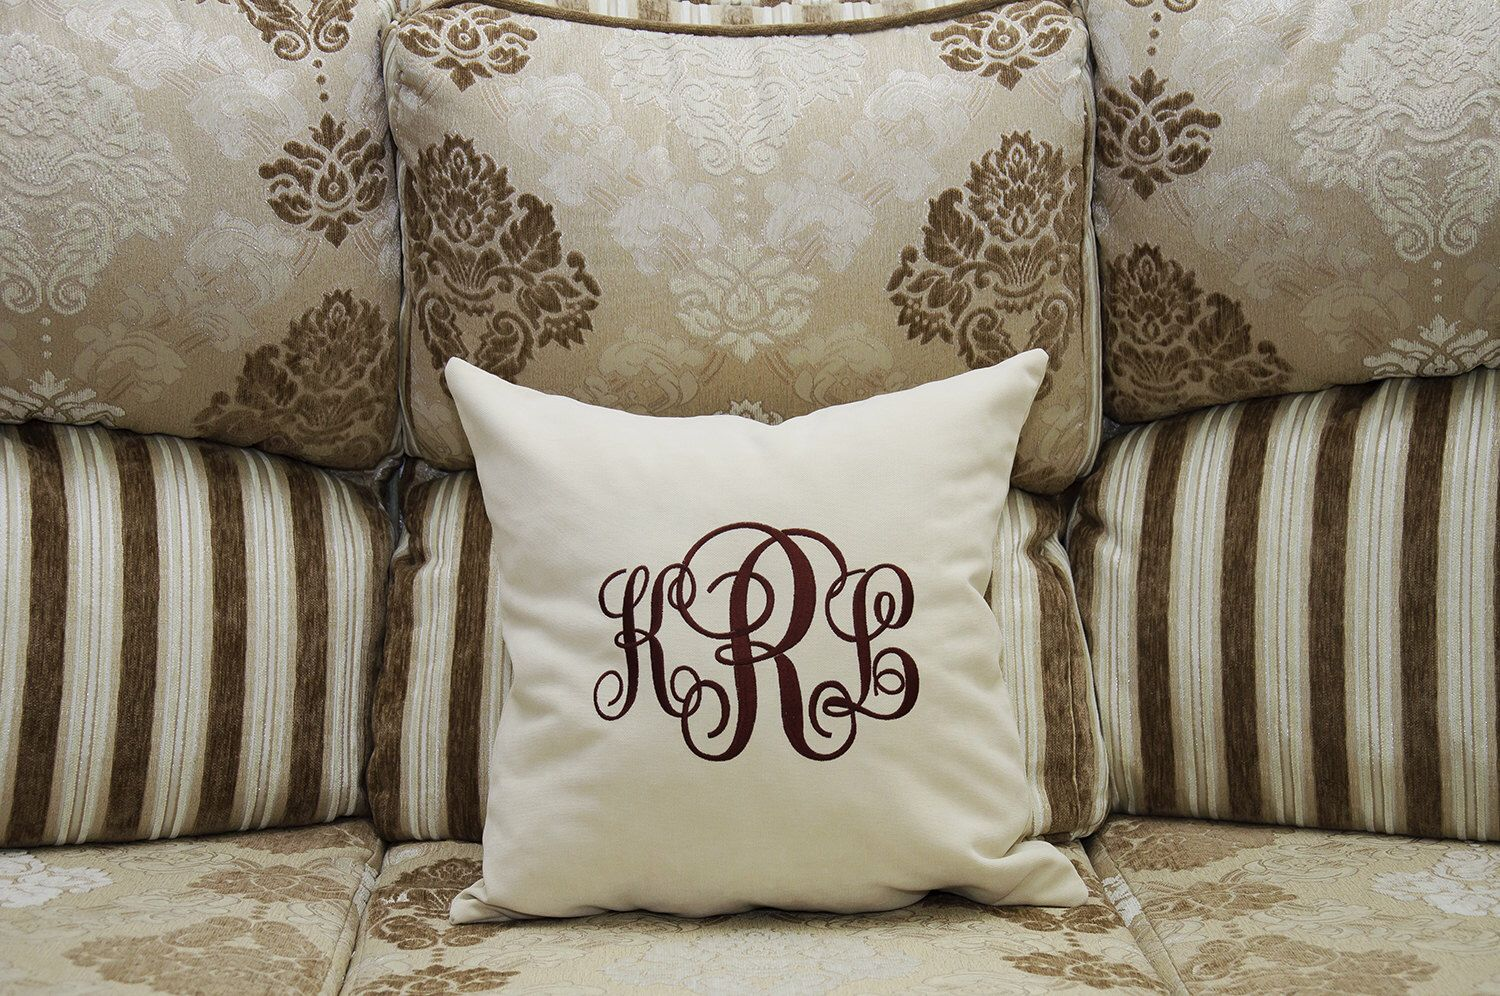 wreath ar holiday pillows pillow monogram projects canvas workshop